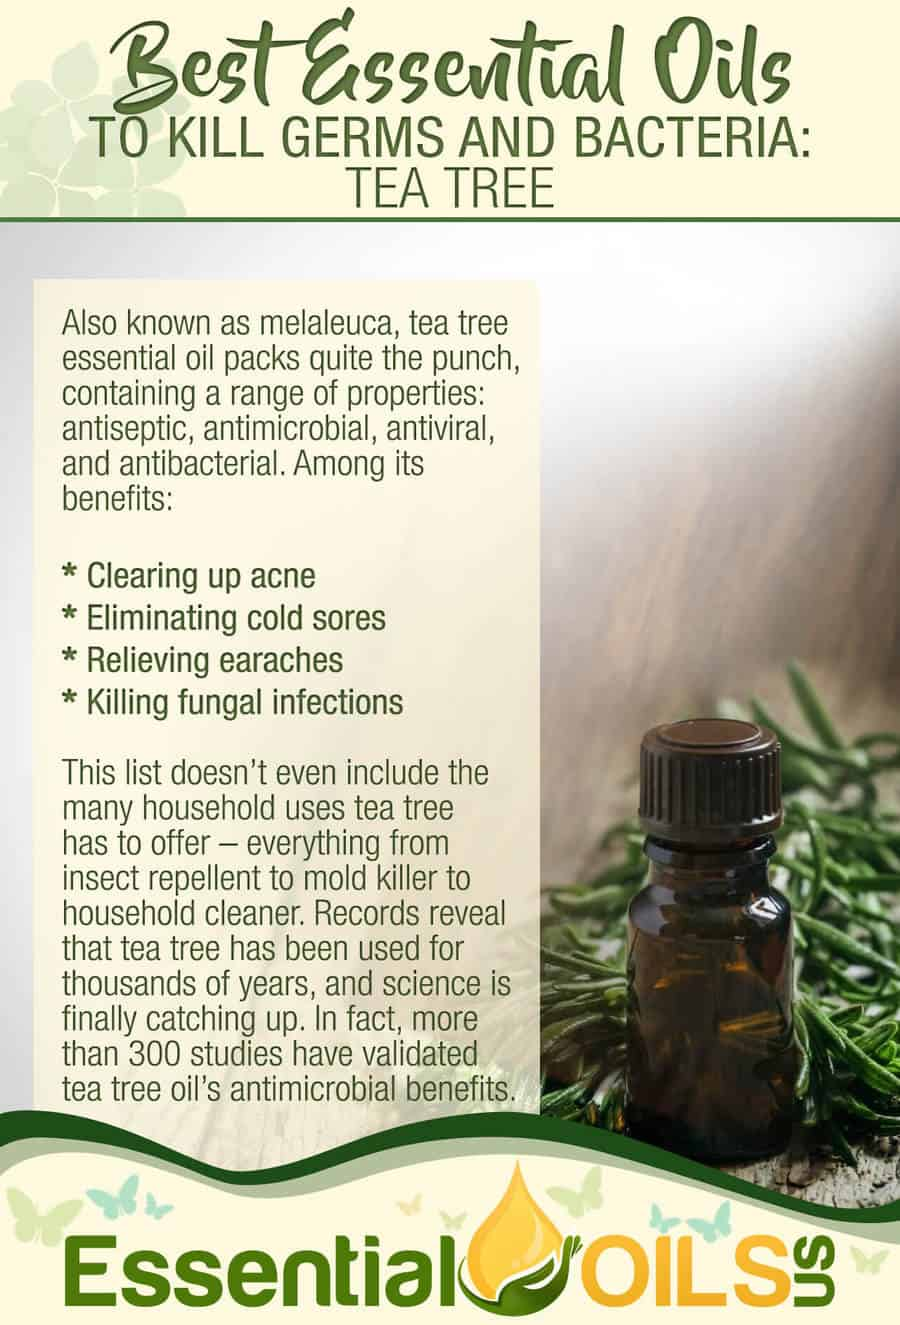 Essential Oils For Germs And Bacteria - Tea Tree